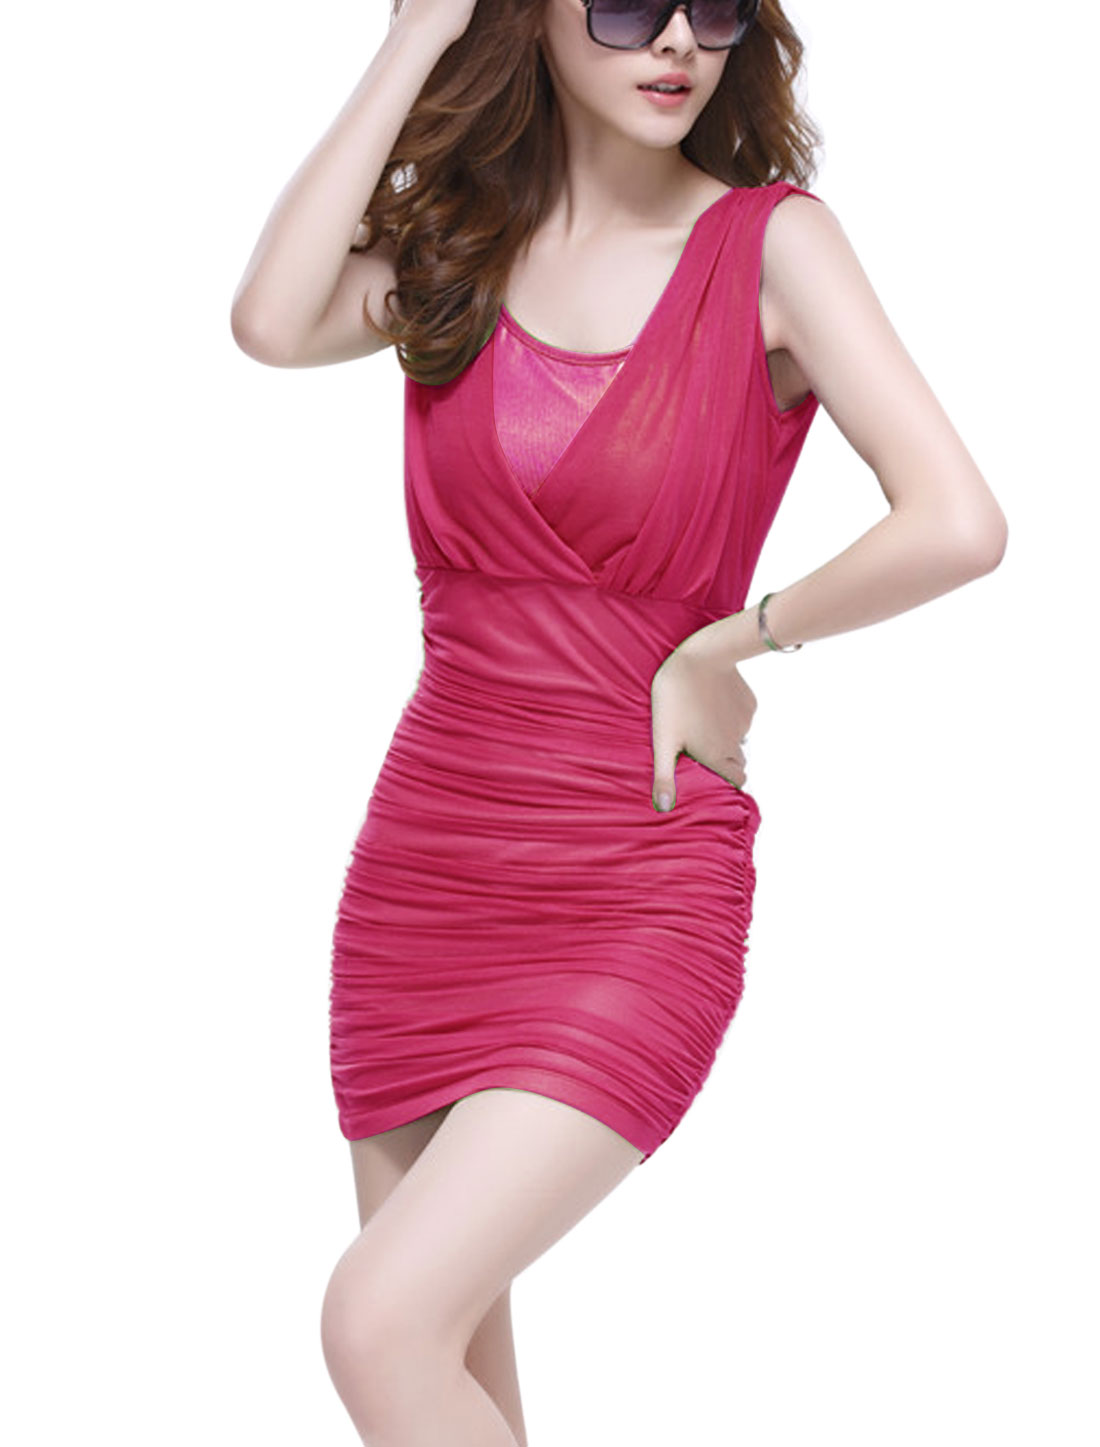 Women Over Hip Design Shirred Back Sheathy Mesh Ruched Dress Fuchsia M